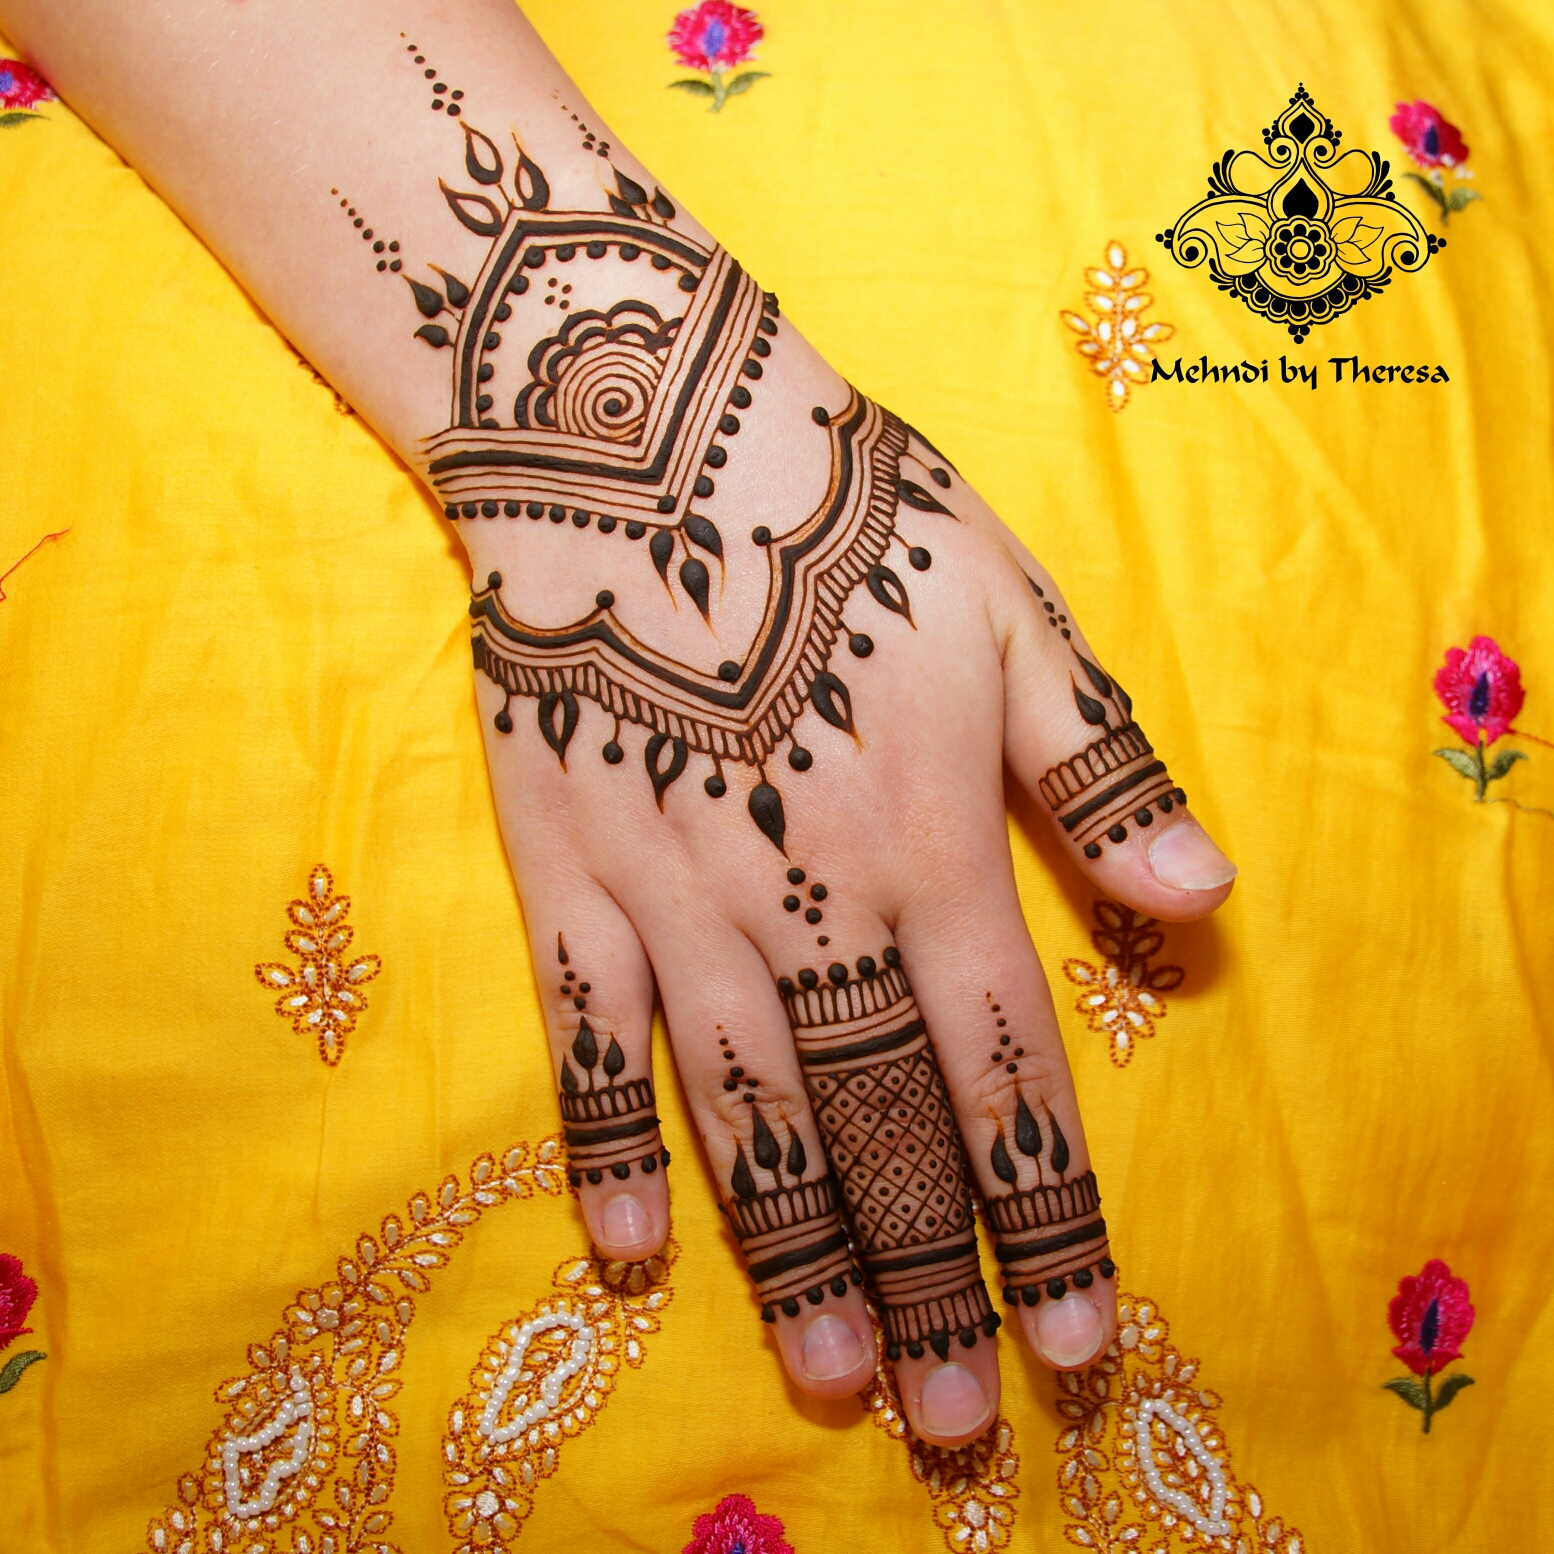 Photo: Mehndi by Theresa